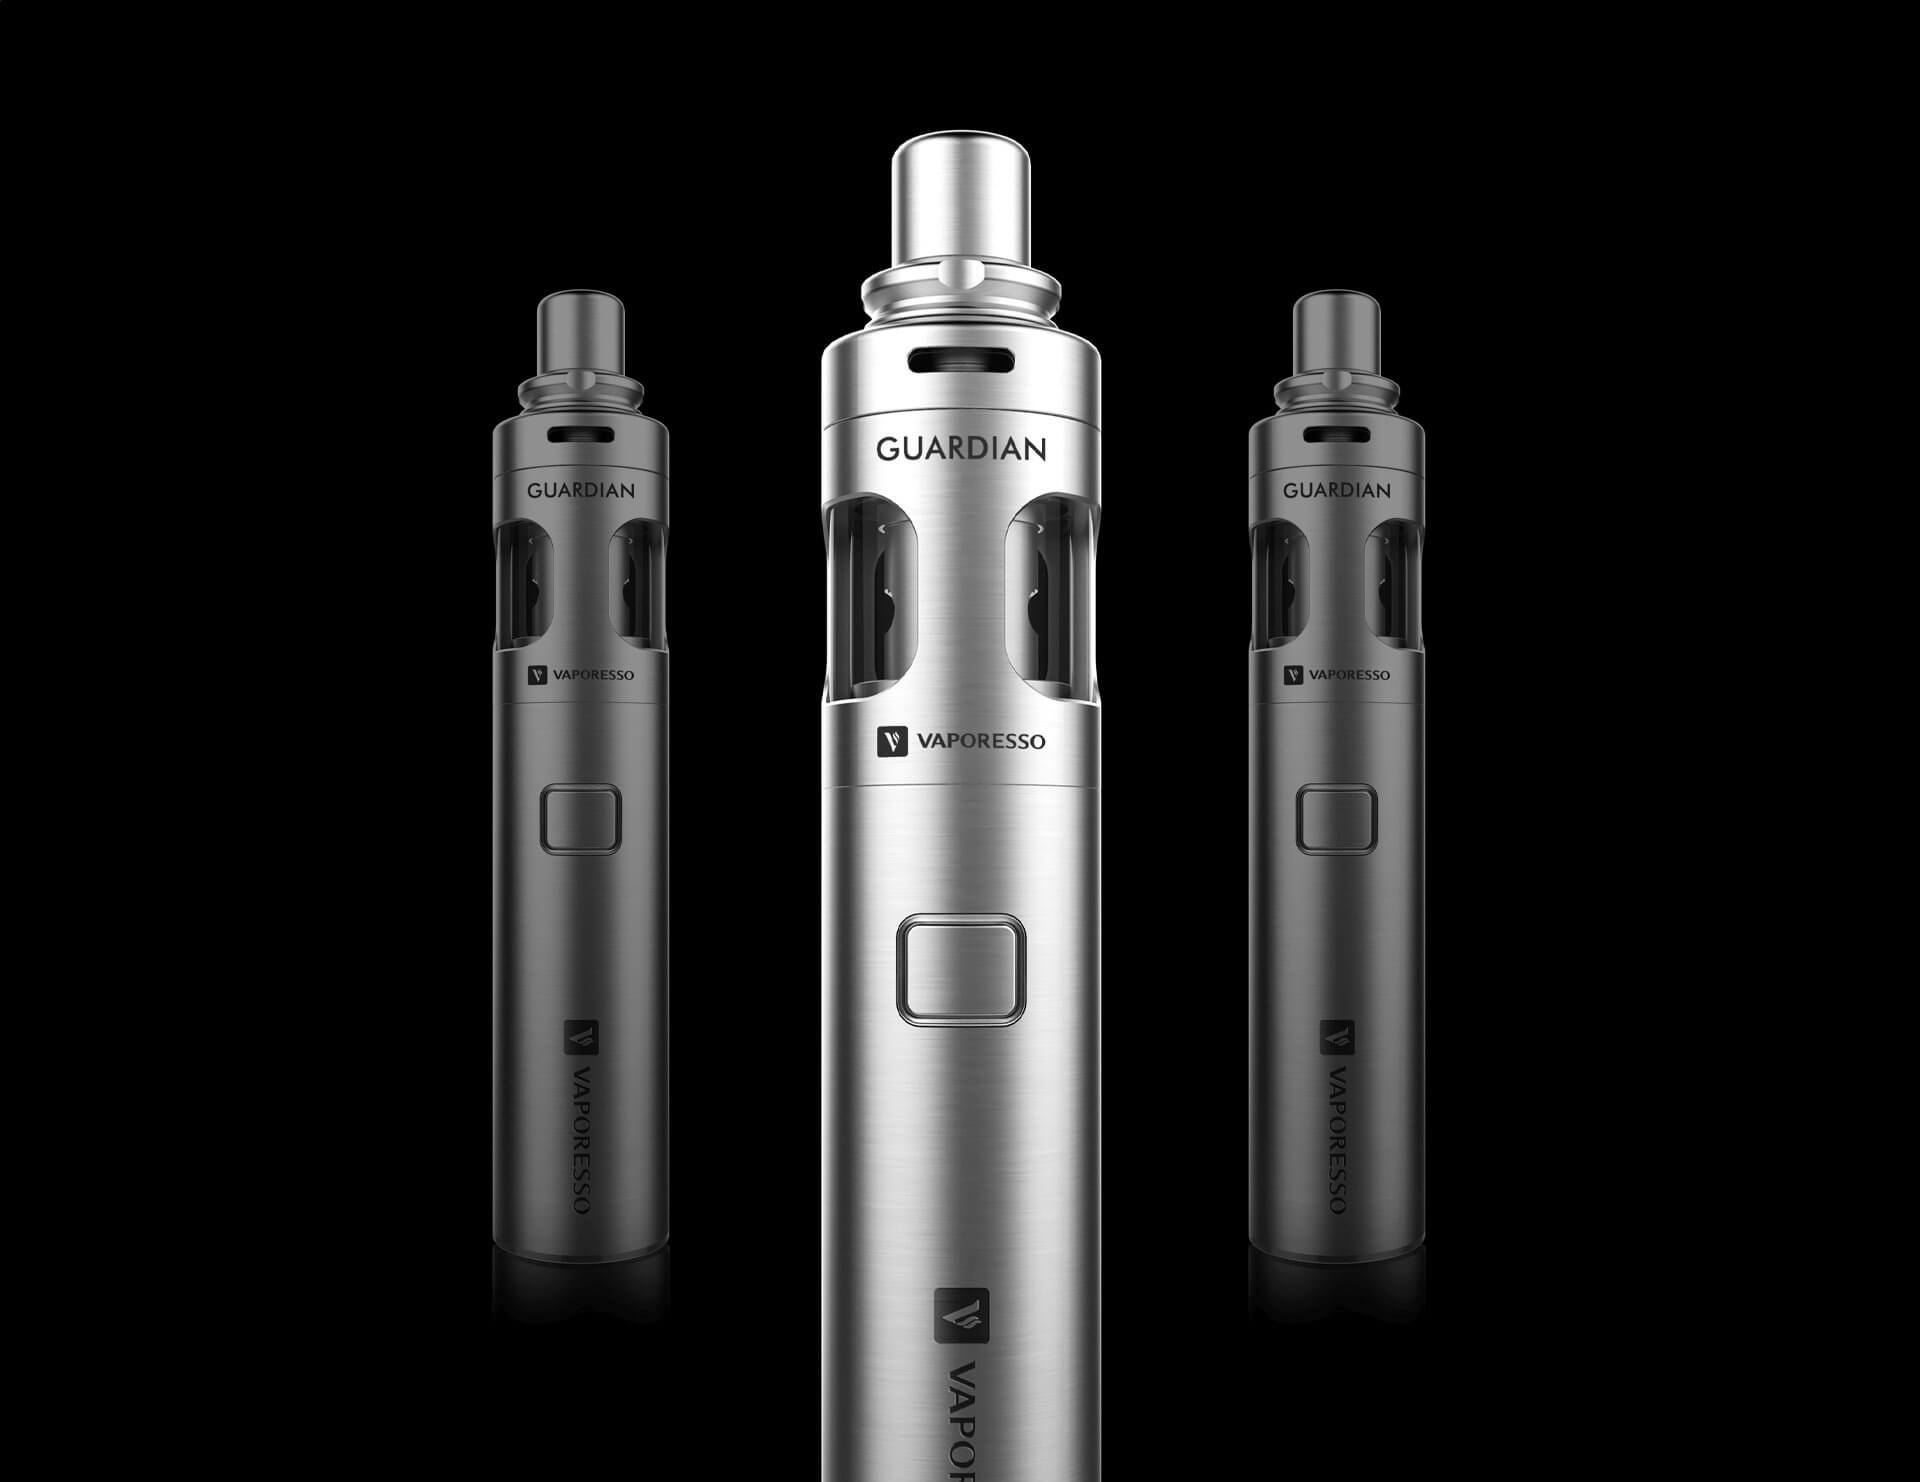 vaporesso_guardian_one_5.jpg